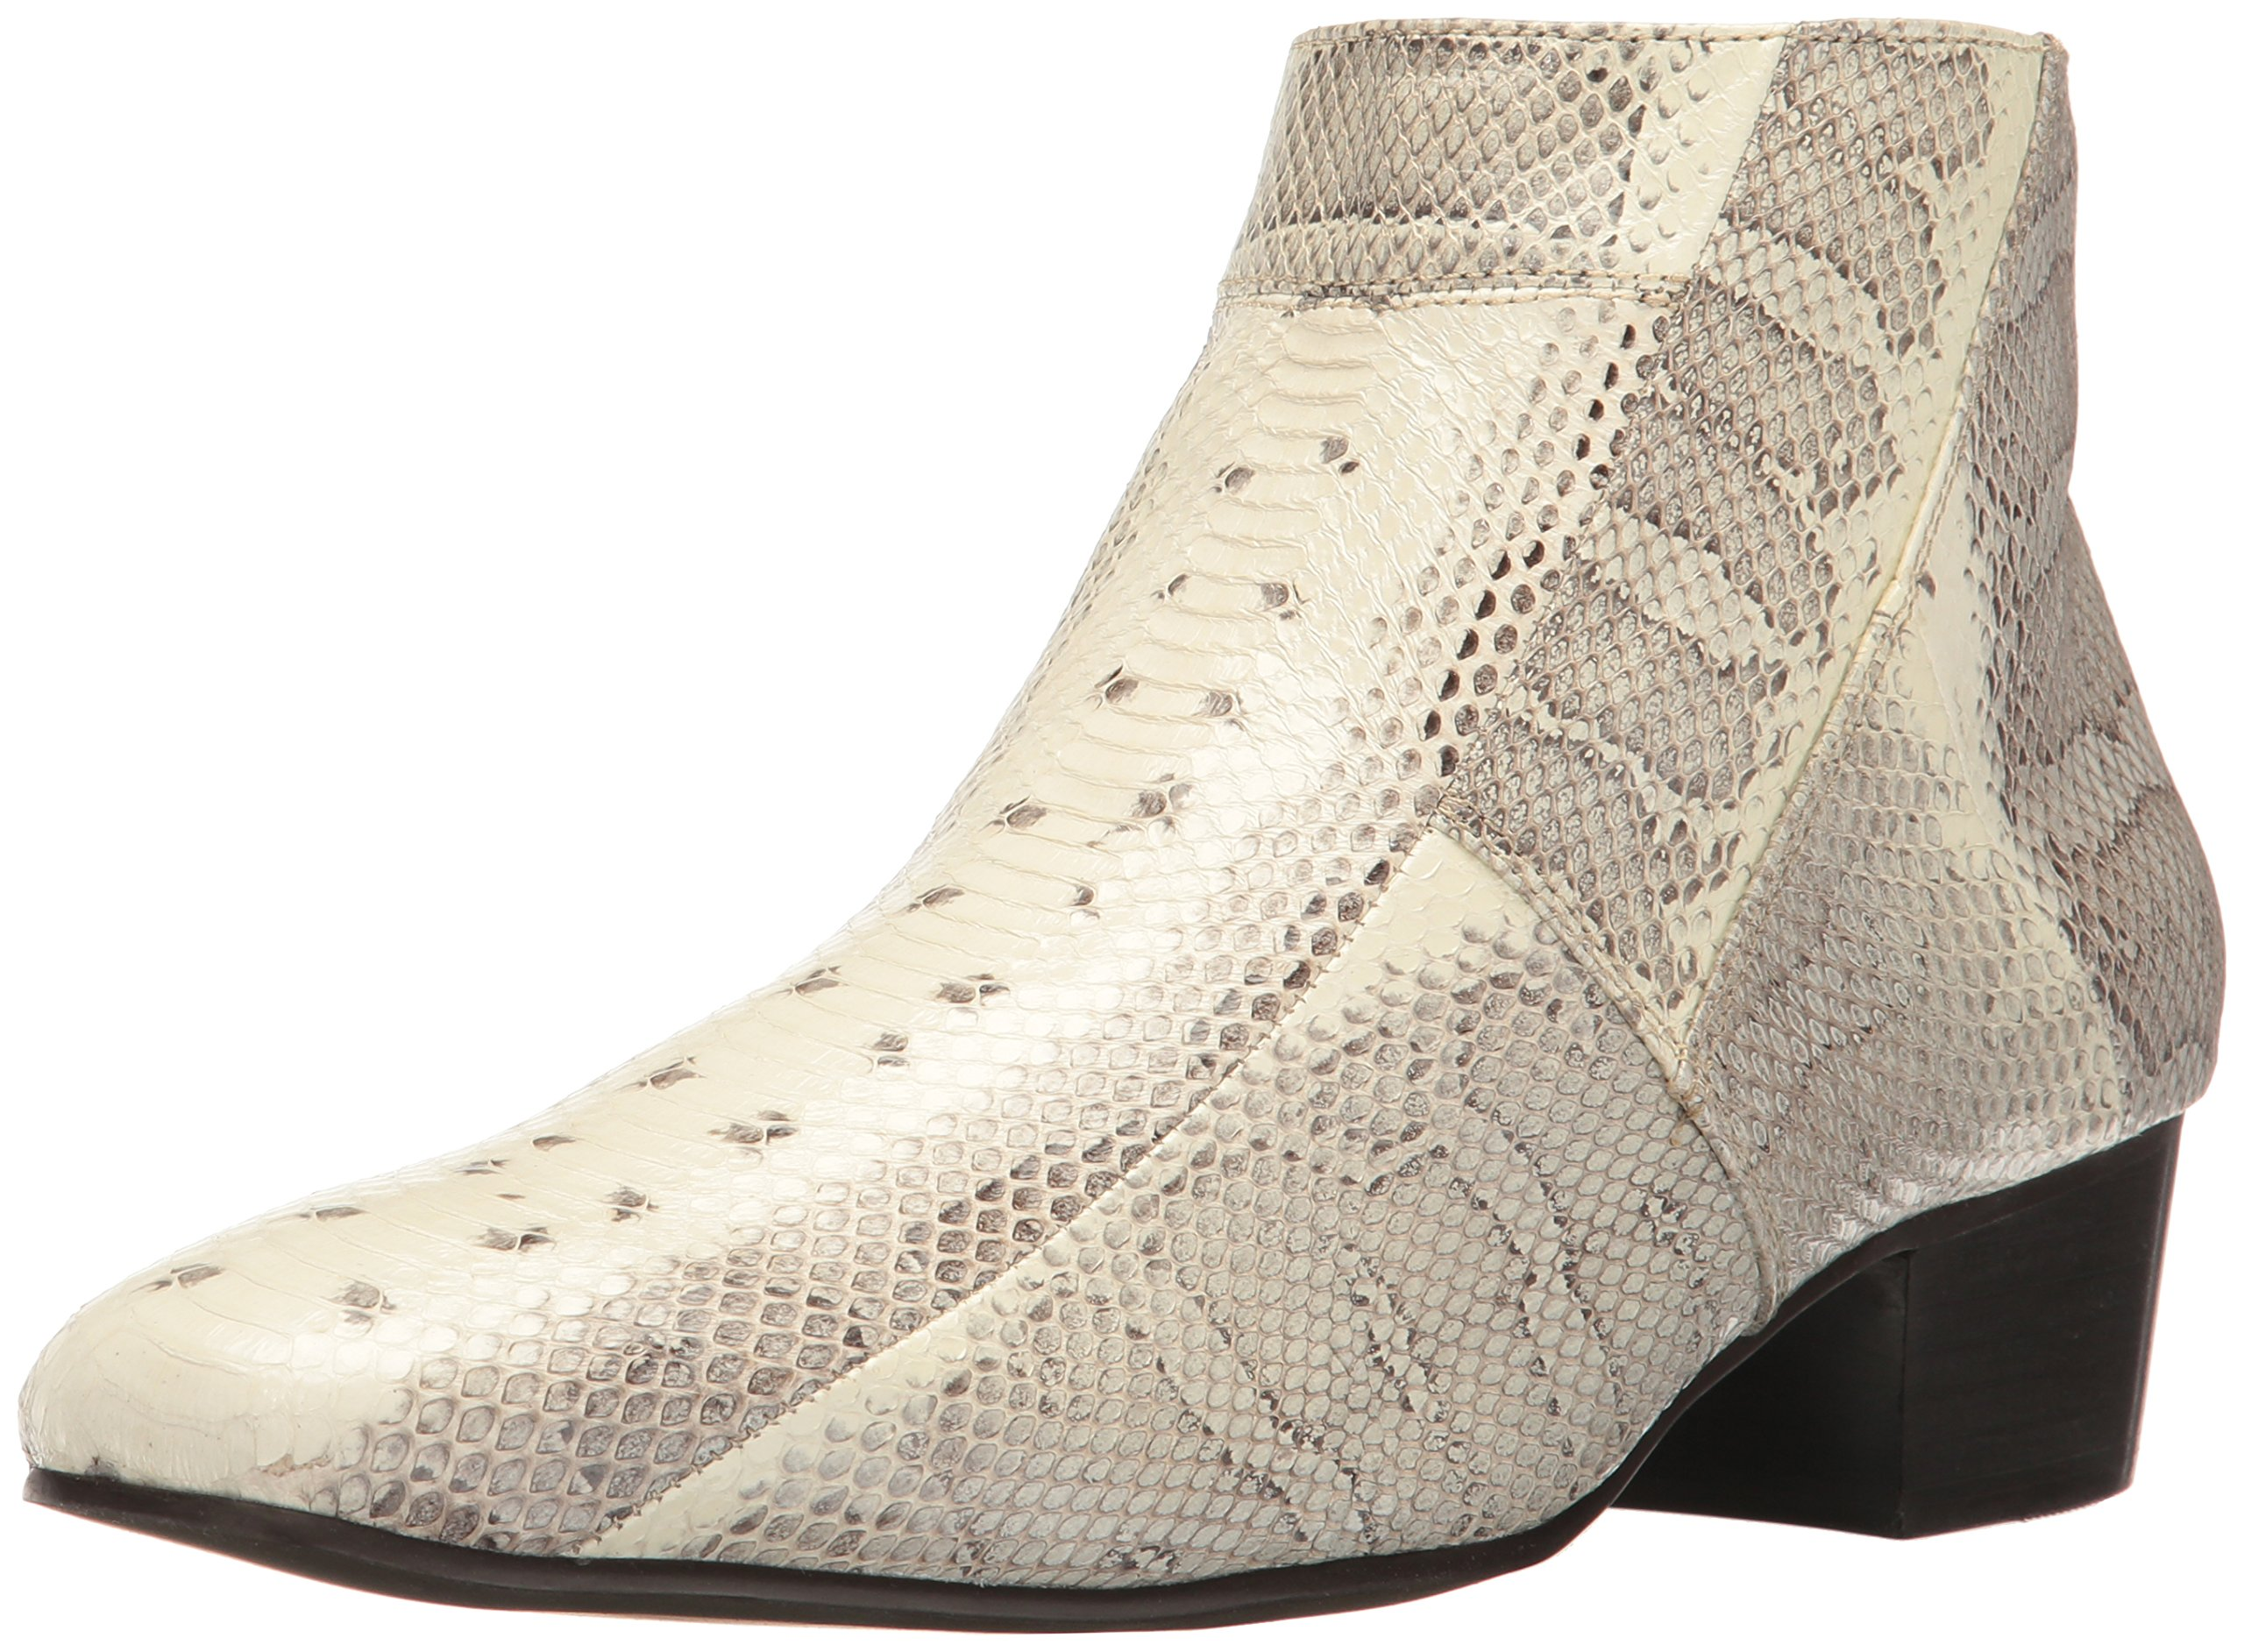 Giorgio Brutini Men's Snake Skin Look 15549 Boots,Undyed Natural,11 M US by Giorgio Brutini